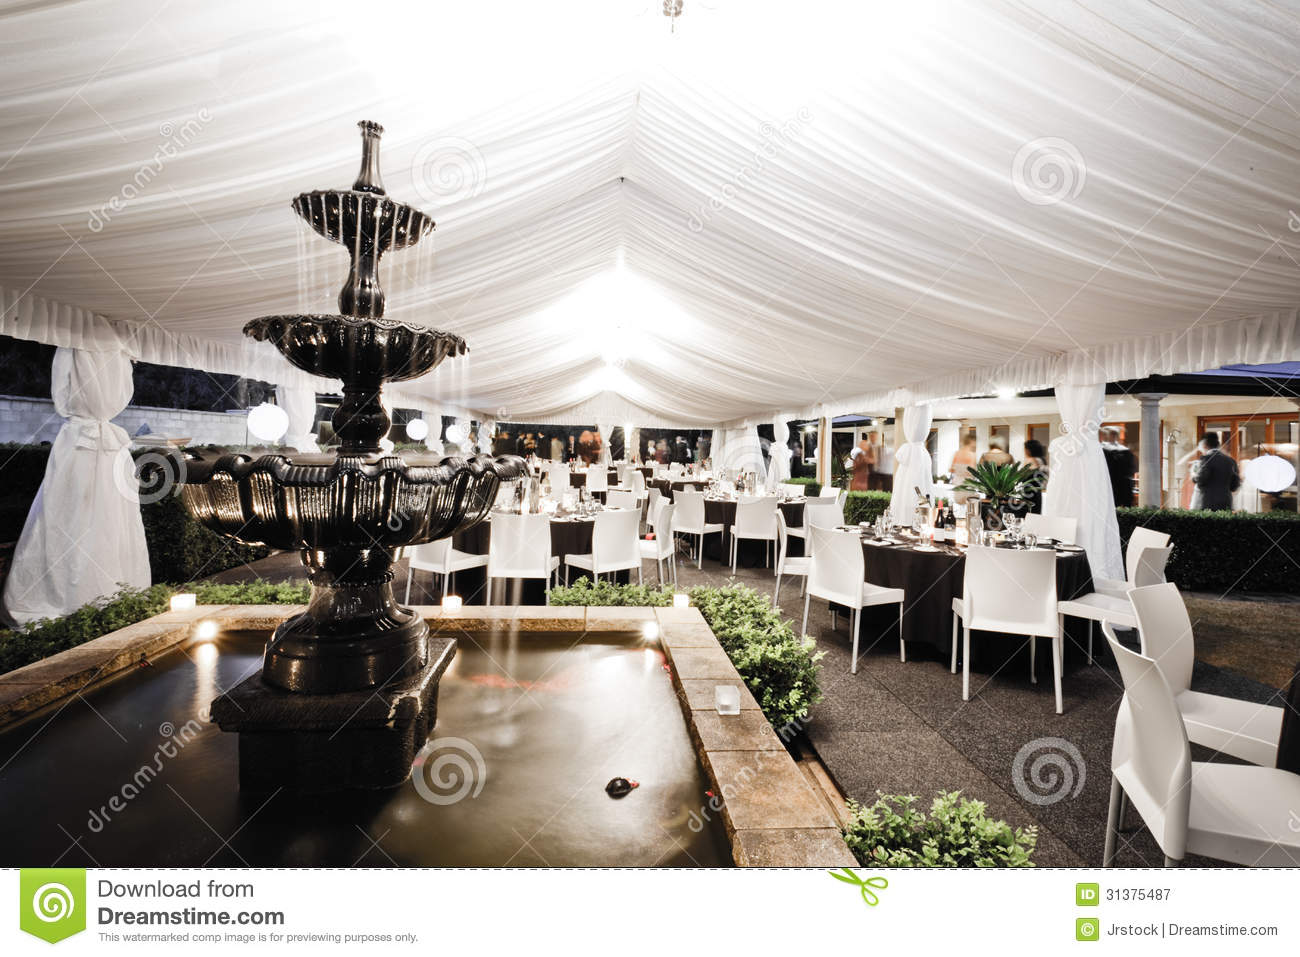 Wedding venue interior with fountain royalty free stock for Wedding interior decoration images